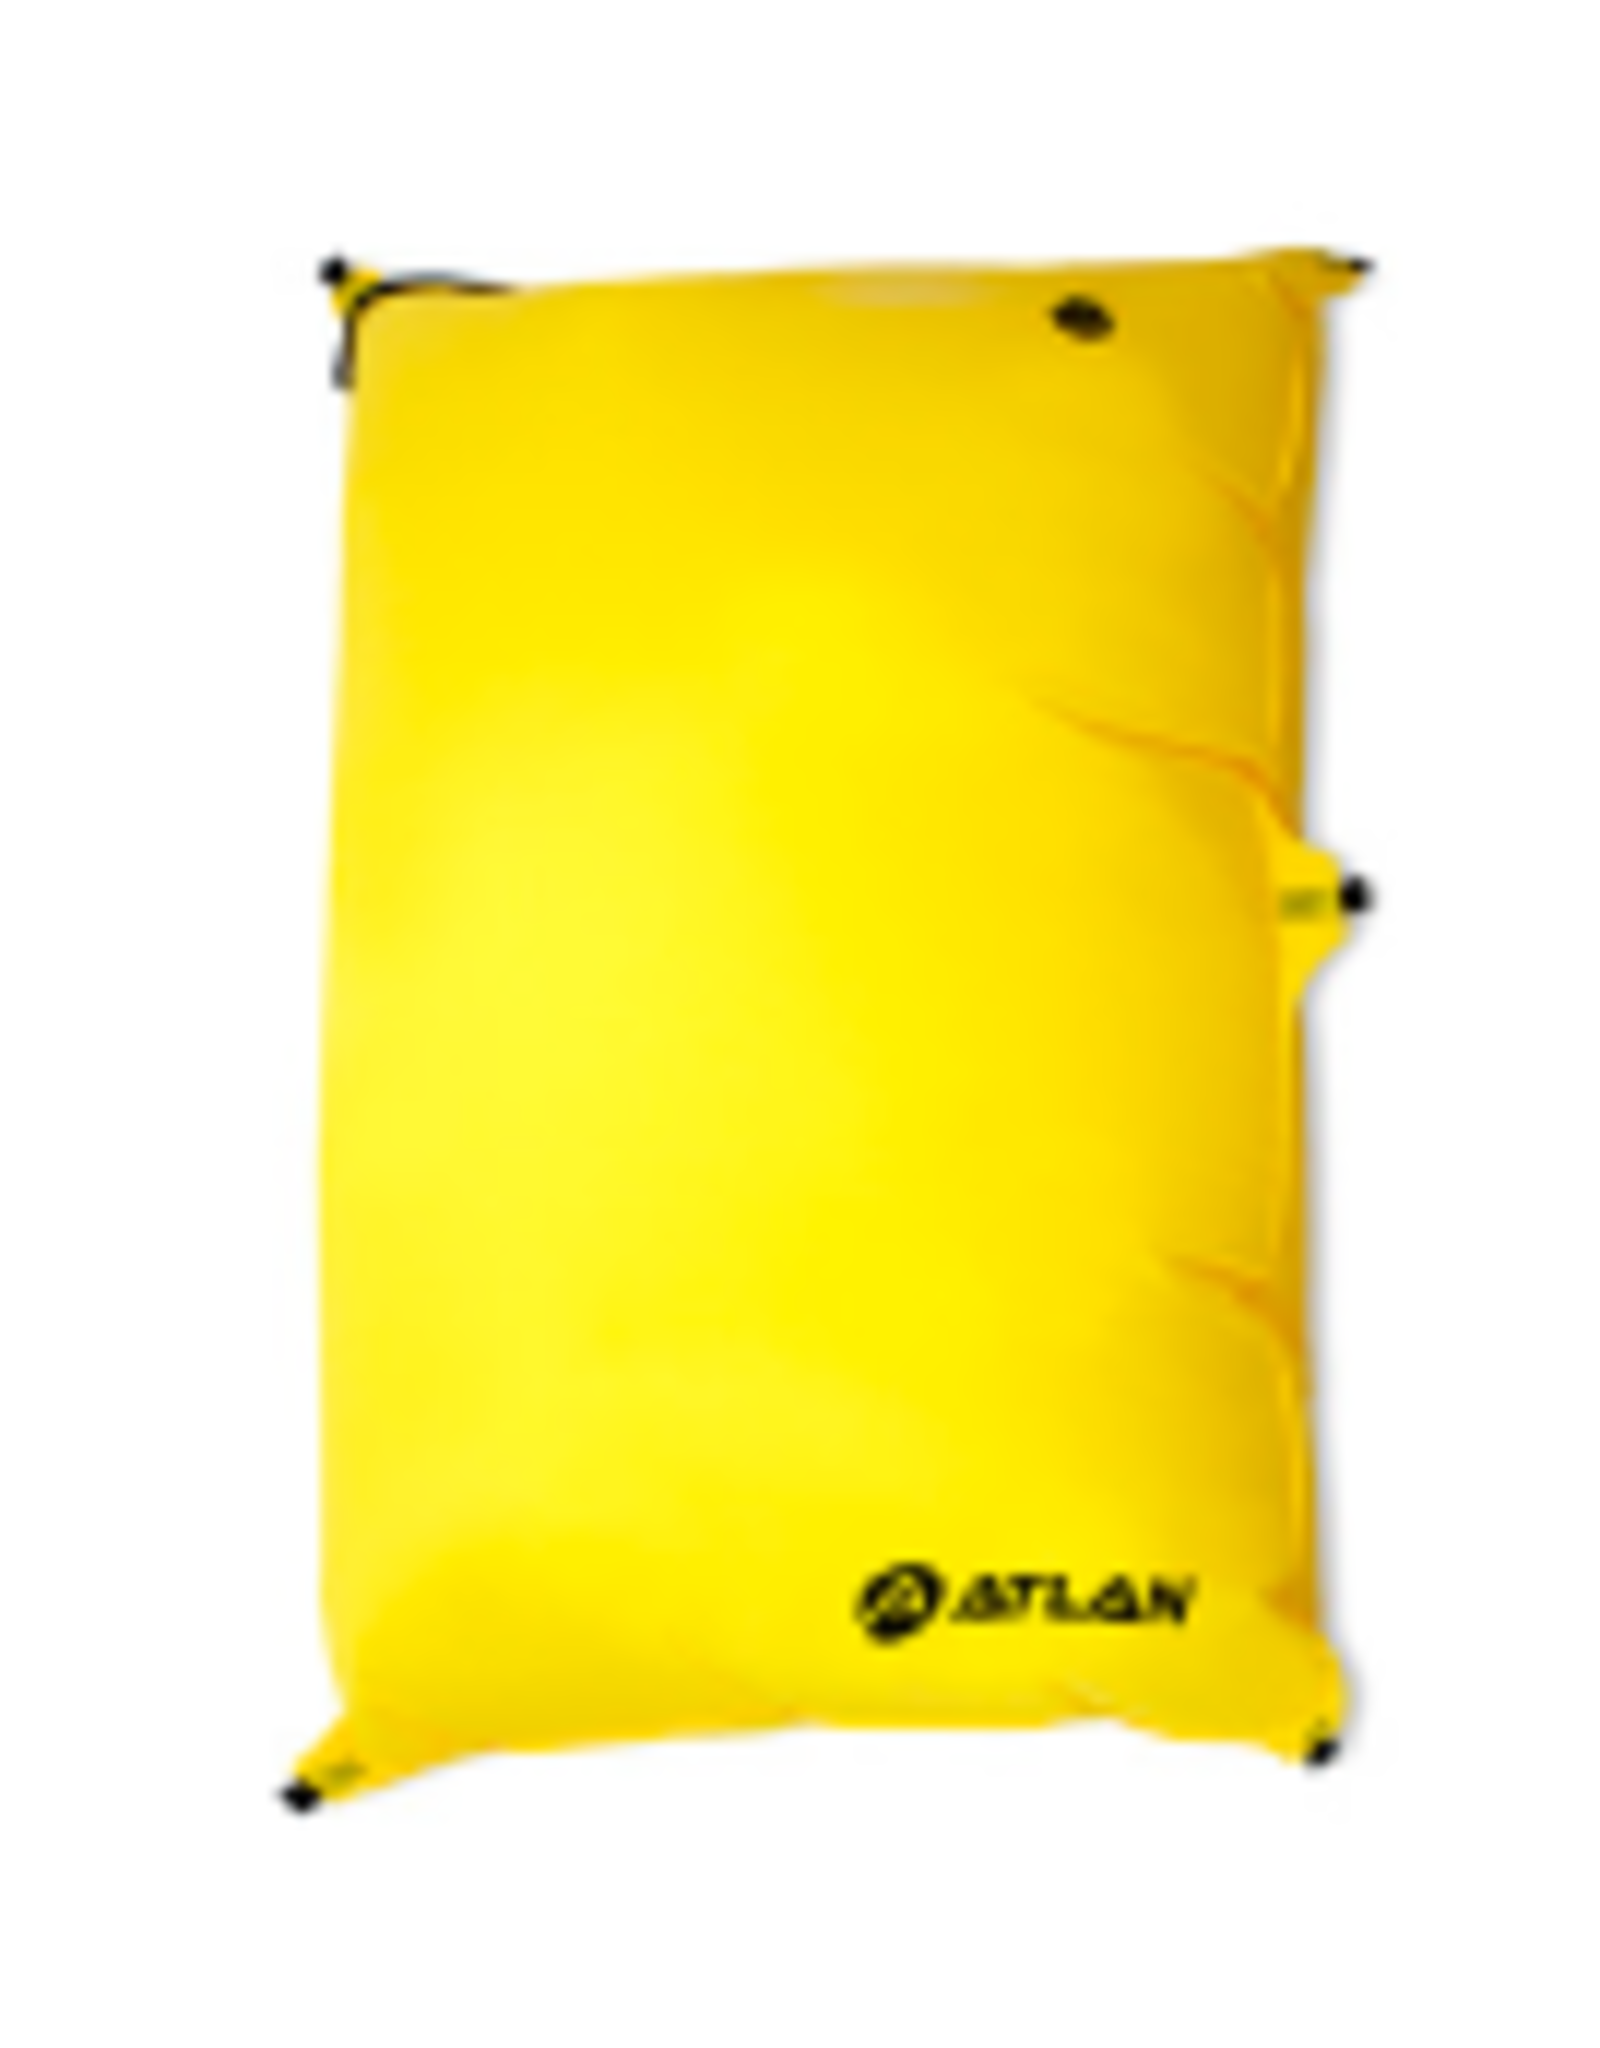 Atlan 3D Nylon flotation Center bag for canoe